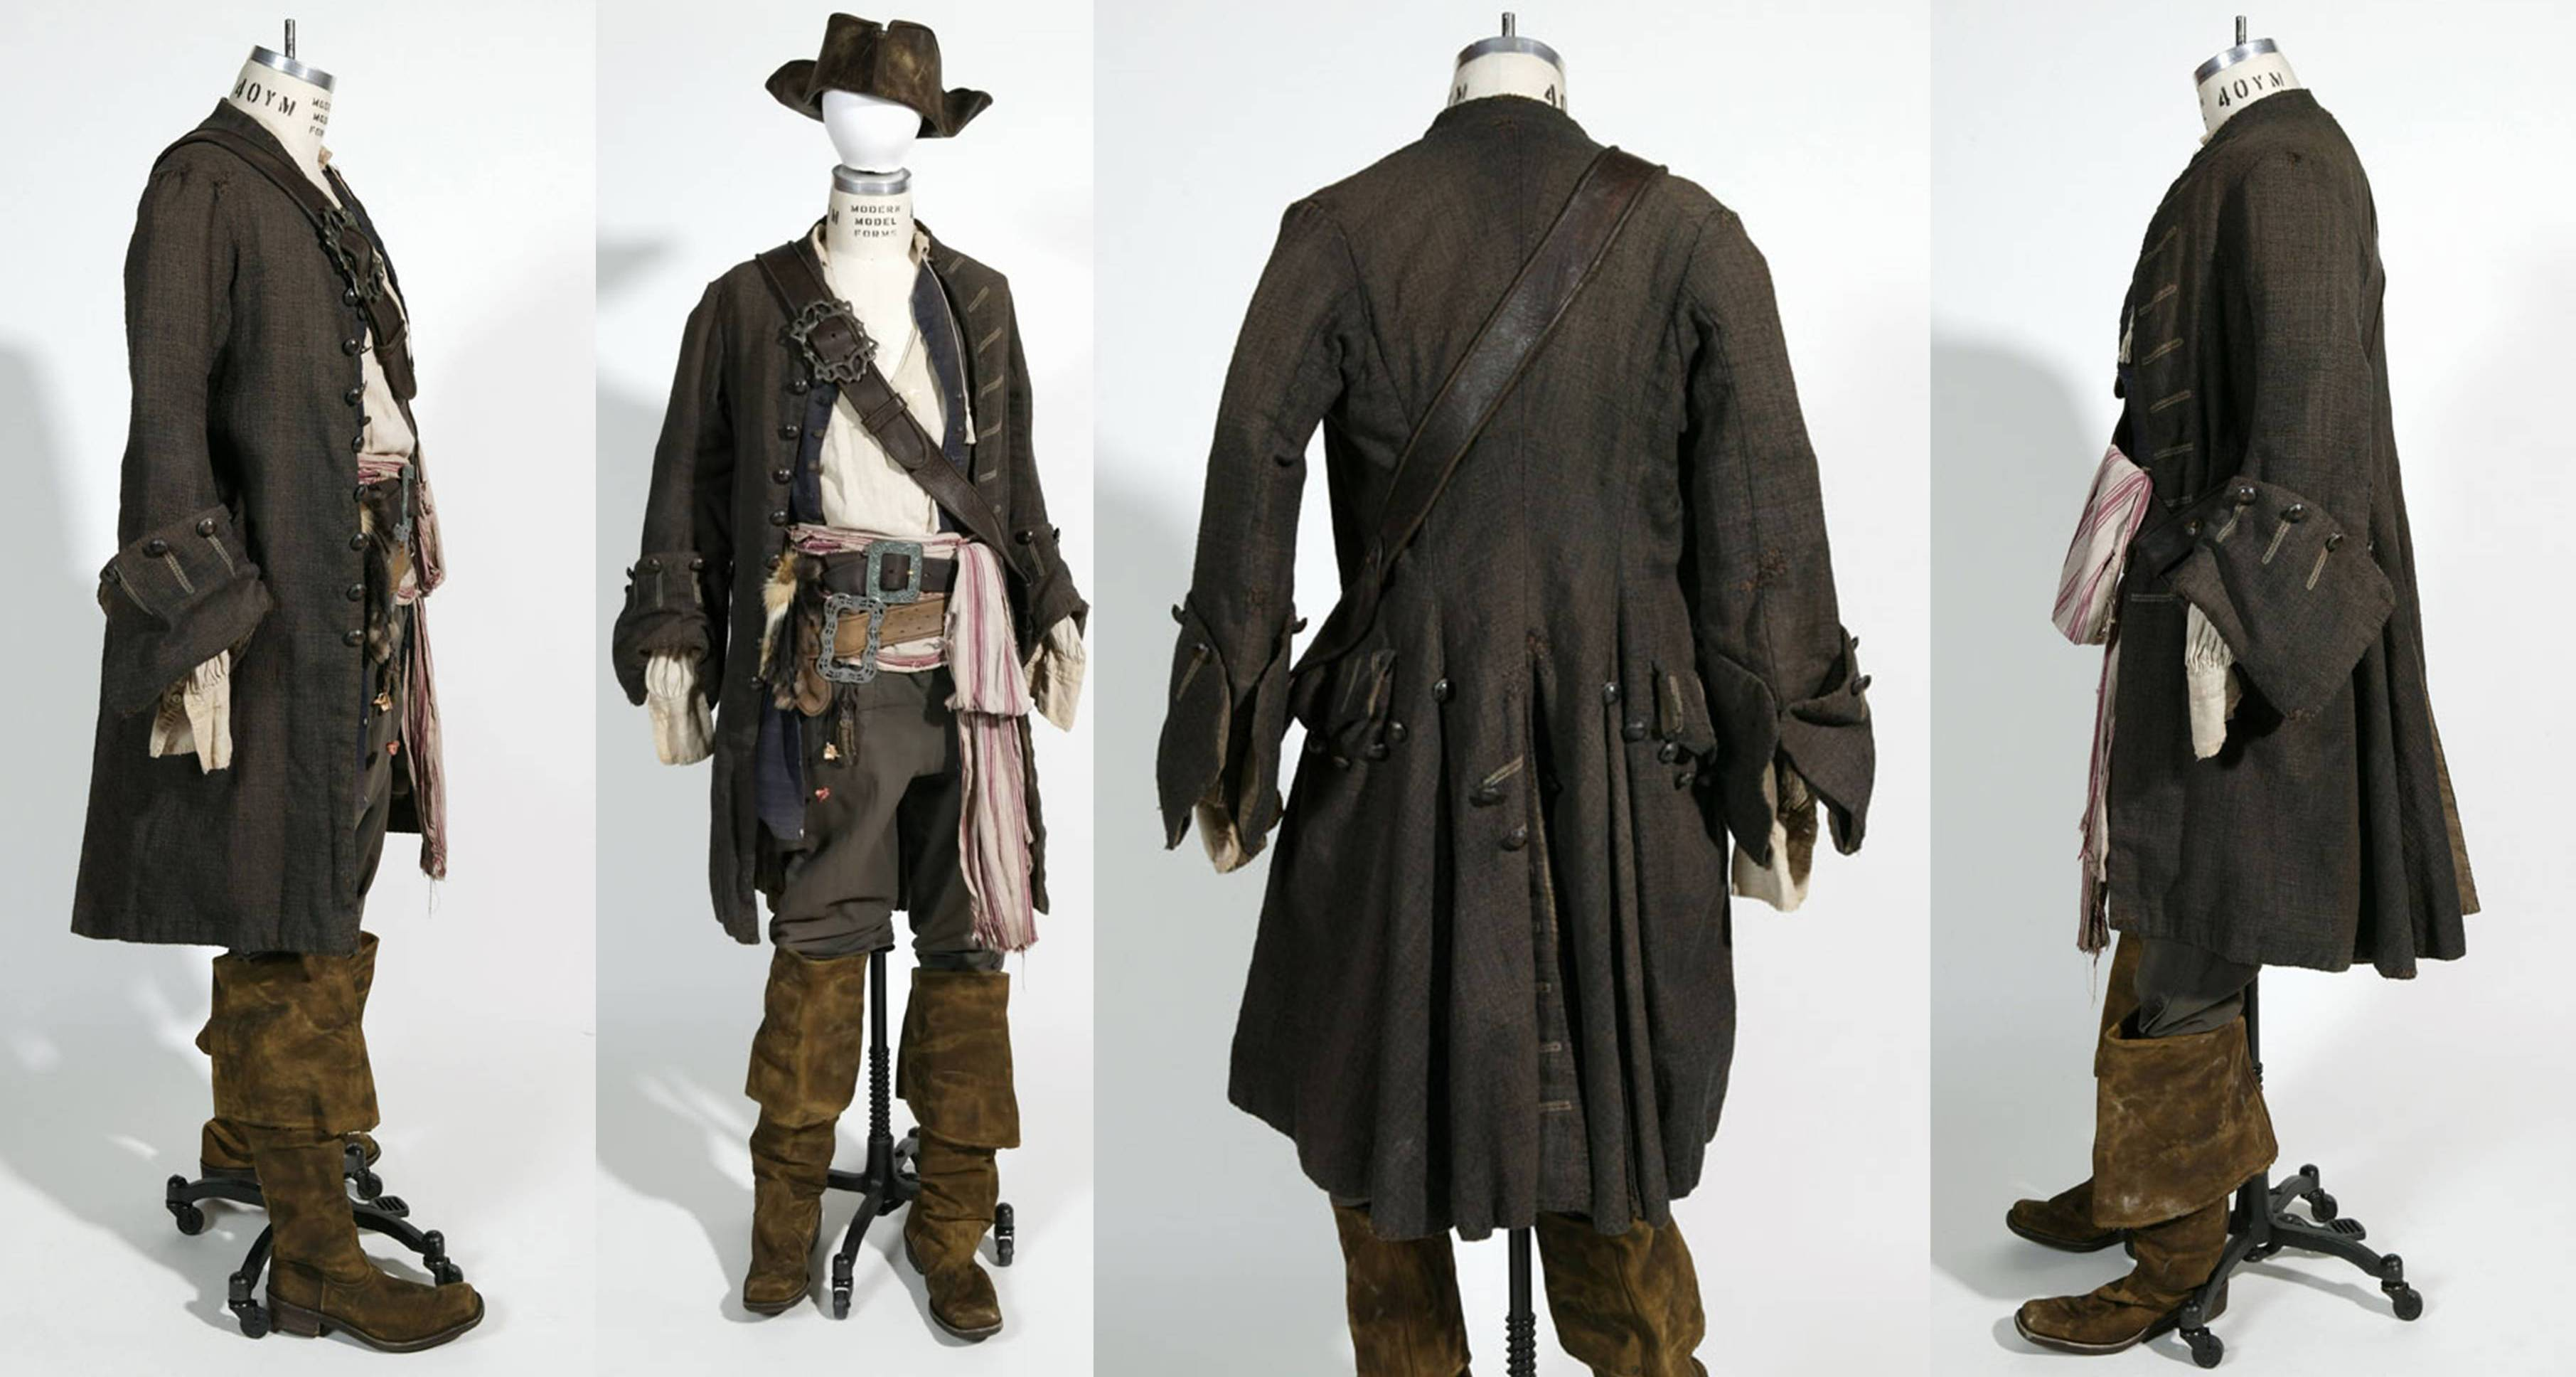 Pirate Jack sparrow waistcoat stage costume lw4OA45